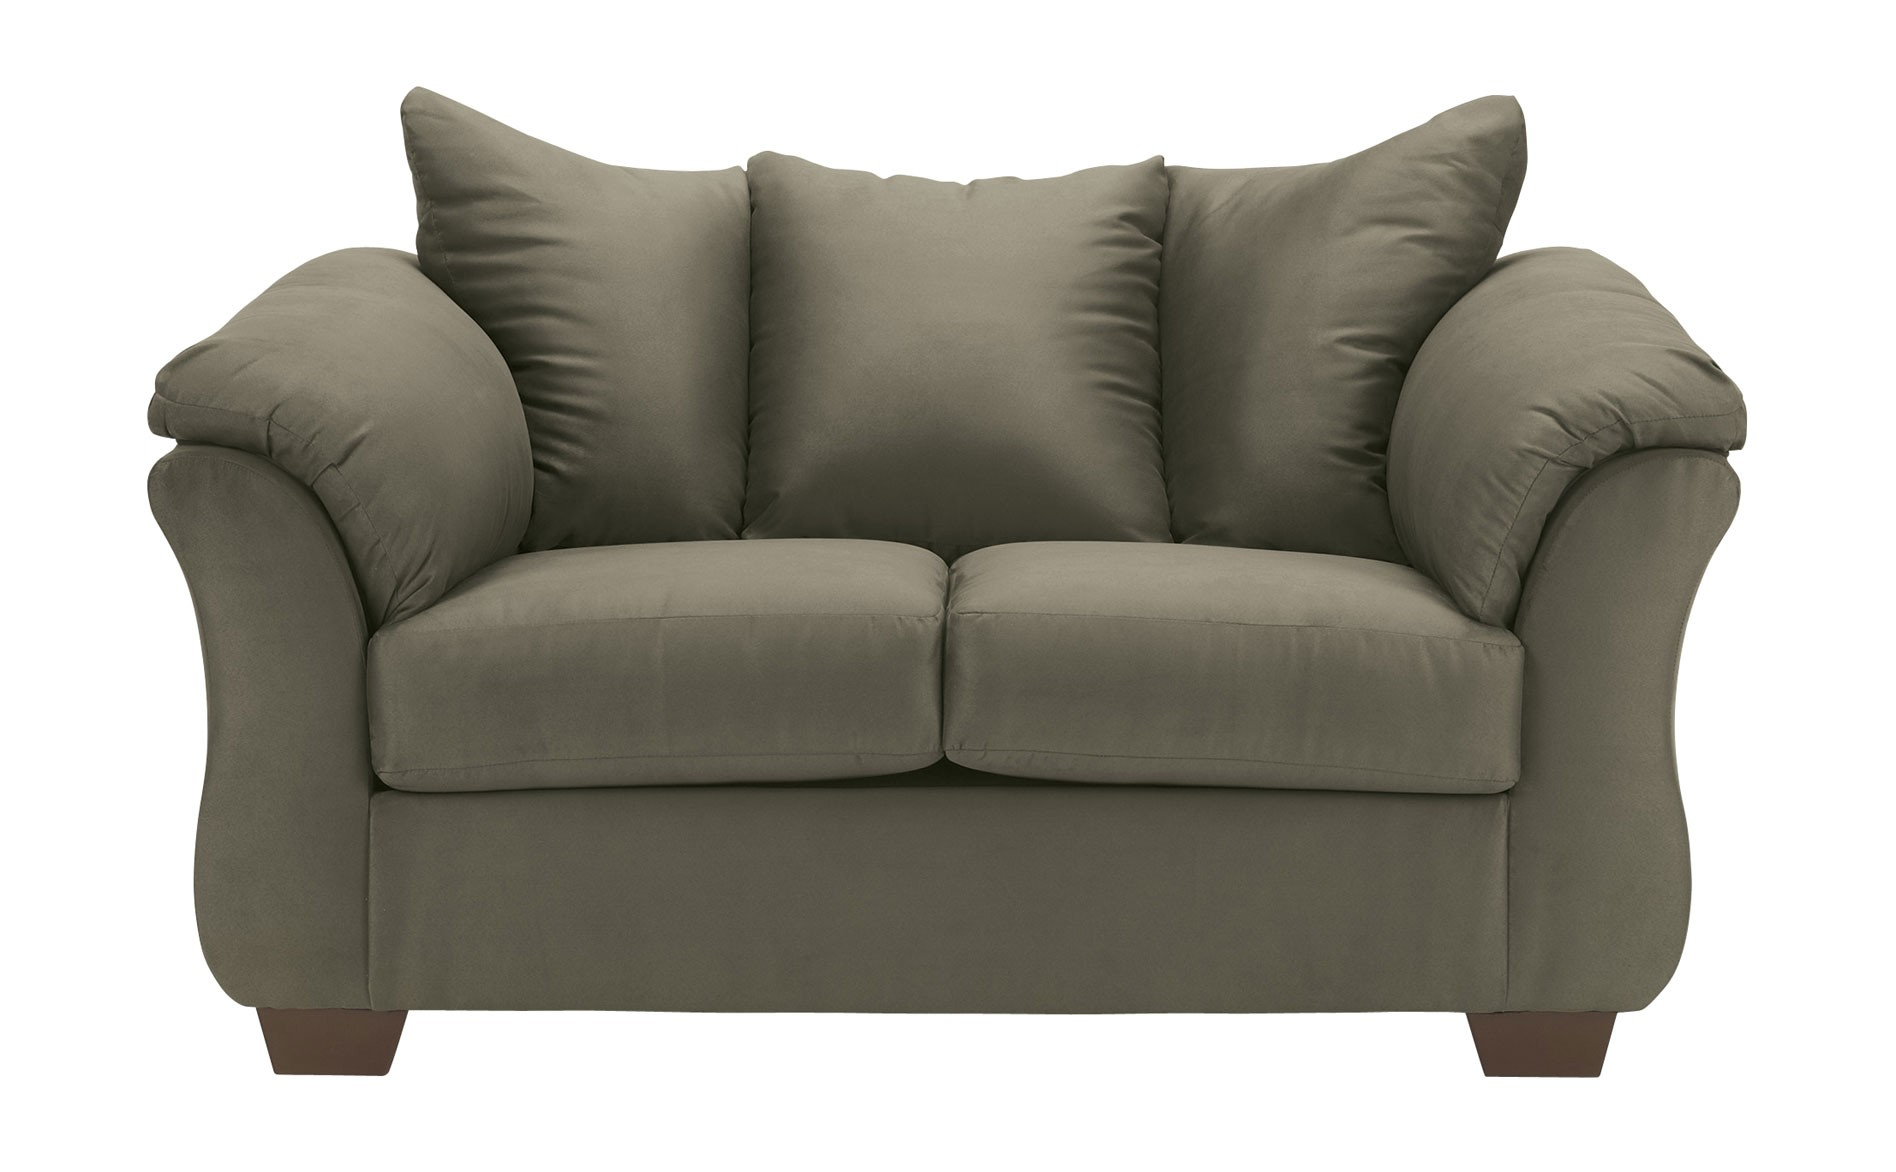 comfortable loveseat elegant loveseat sleeper design RNVEGZR